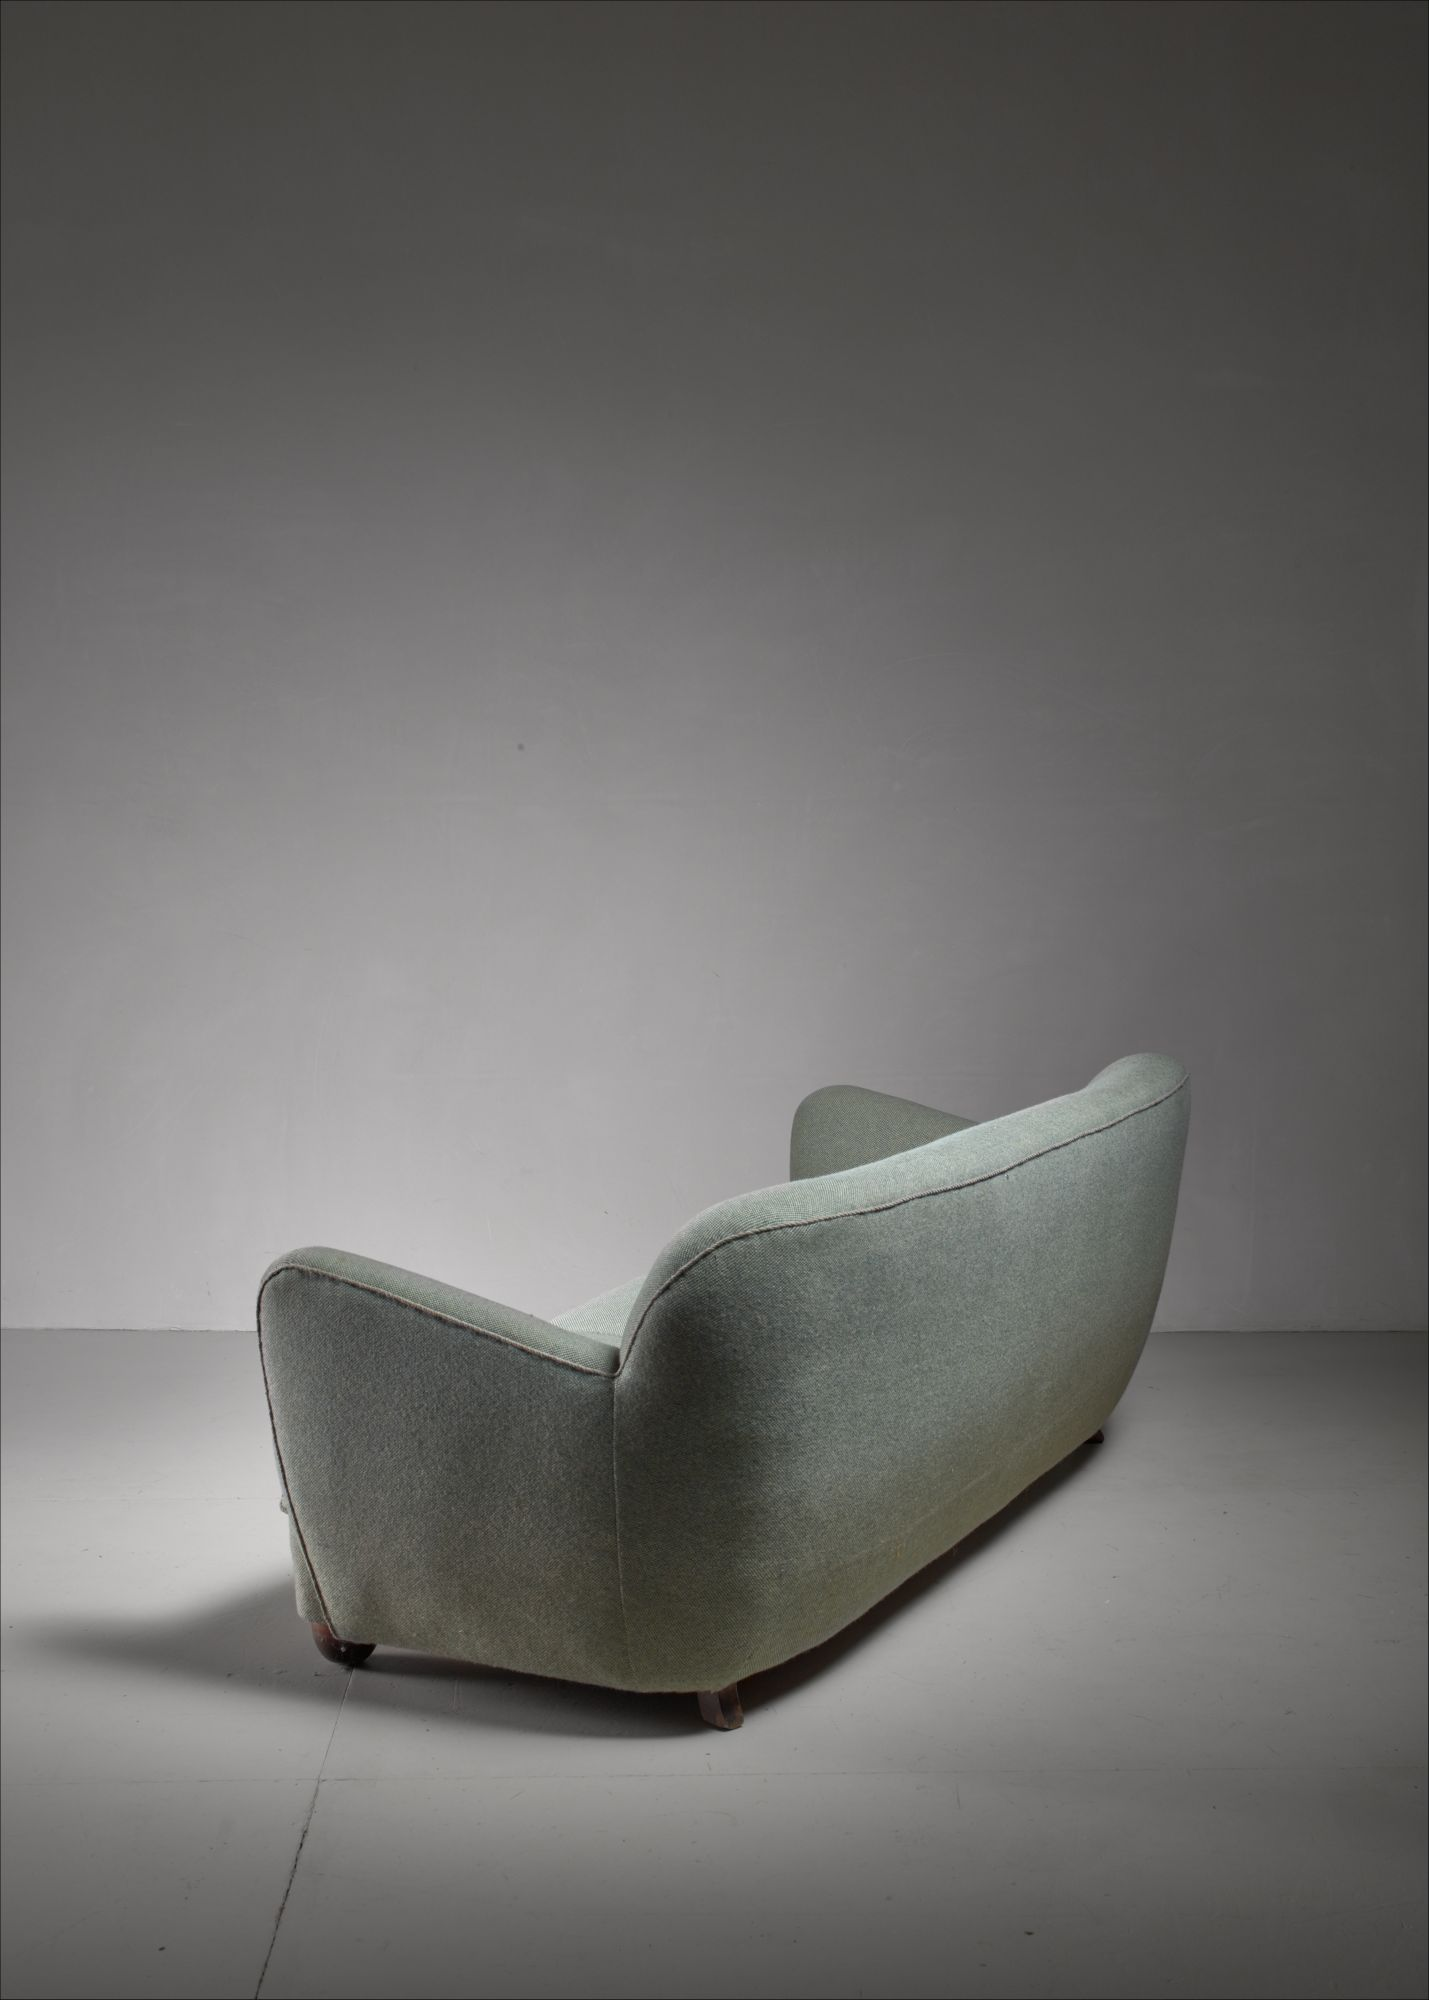 Curved three seat sofa with light blue fabric upholstery denmark 1930s